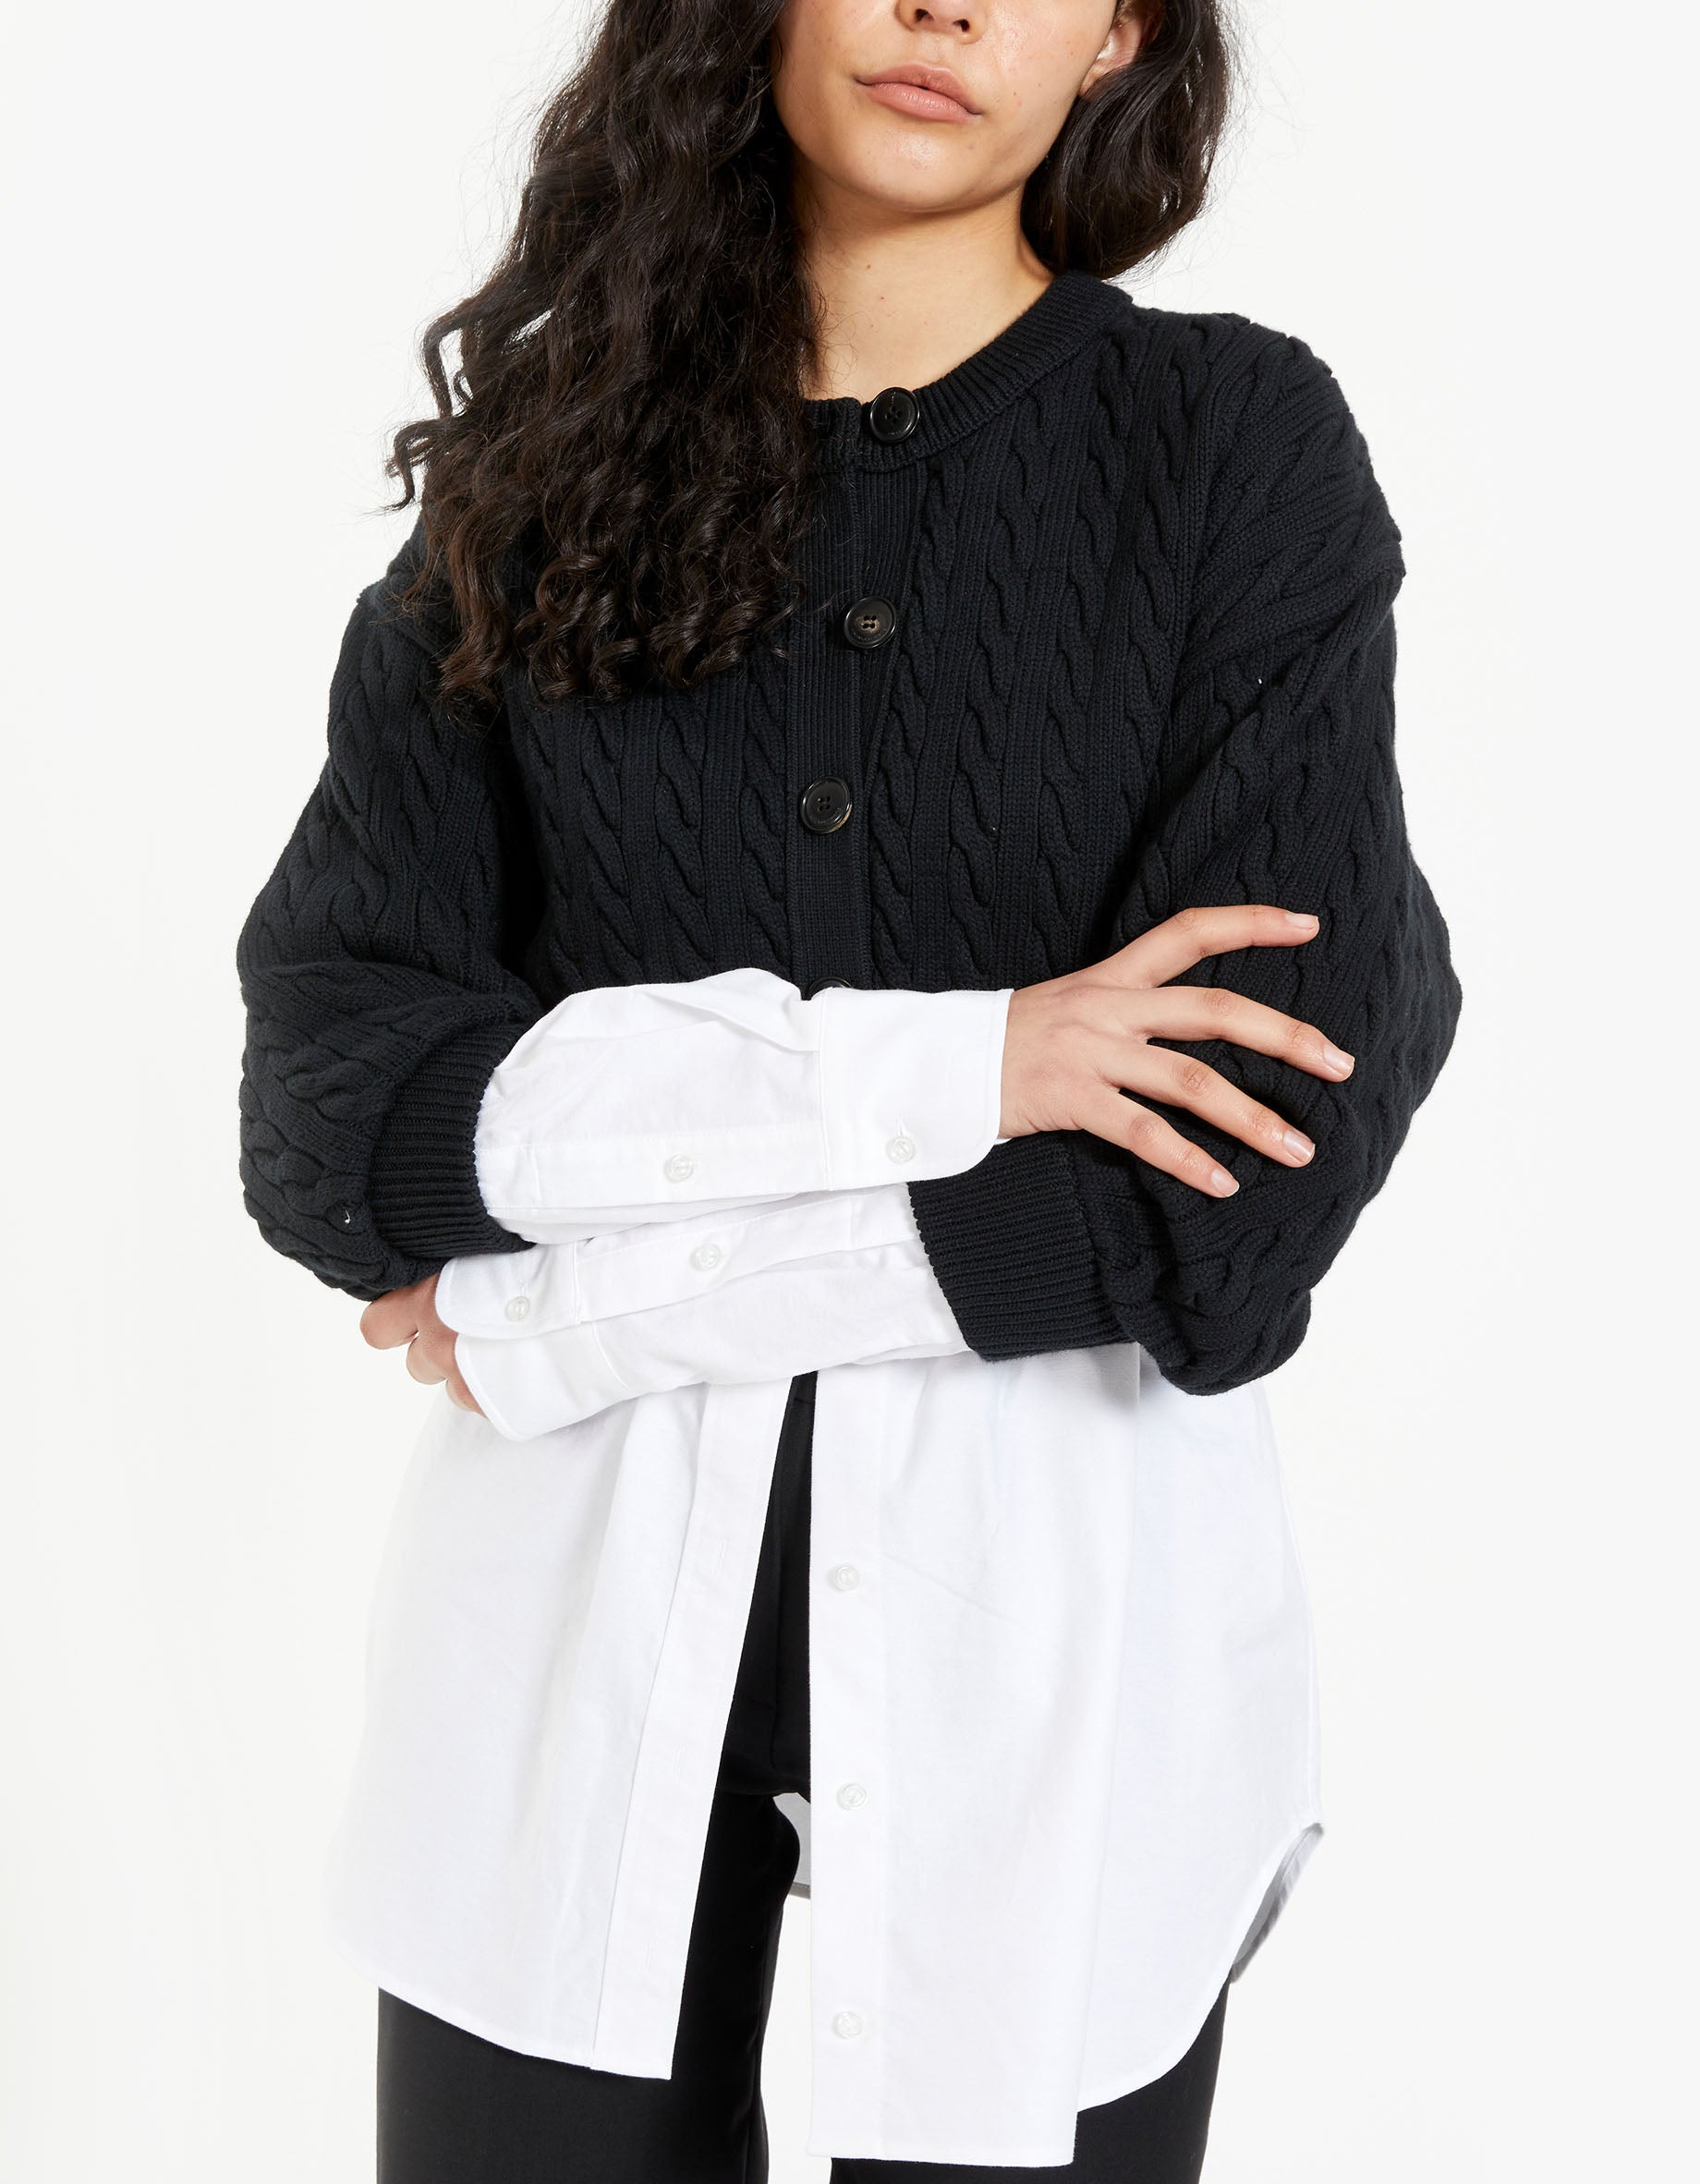 Bi-Layer Cable Cardigan With Oxford Shirting - Black/White